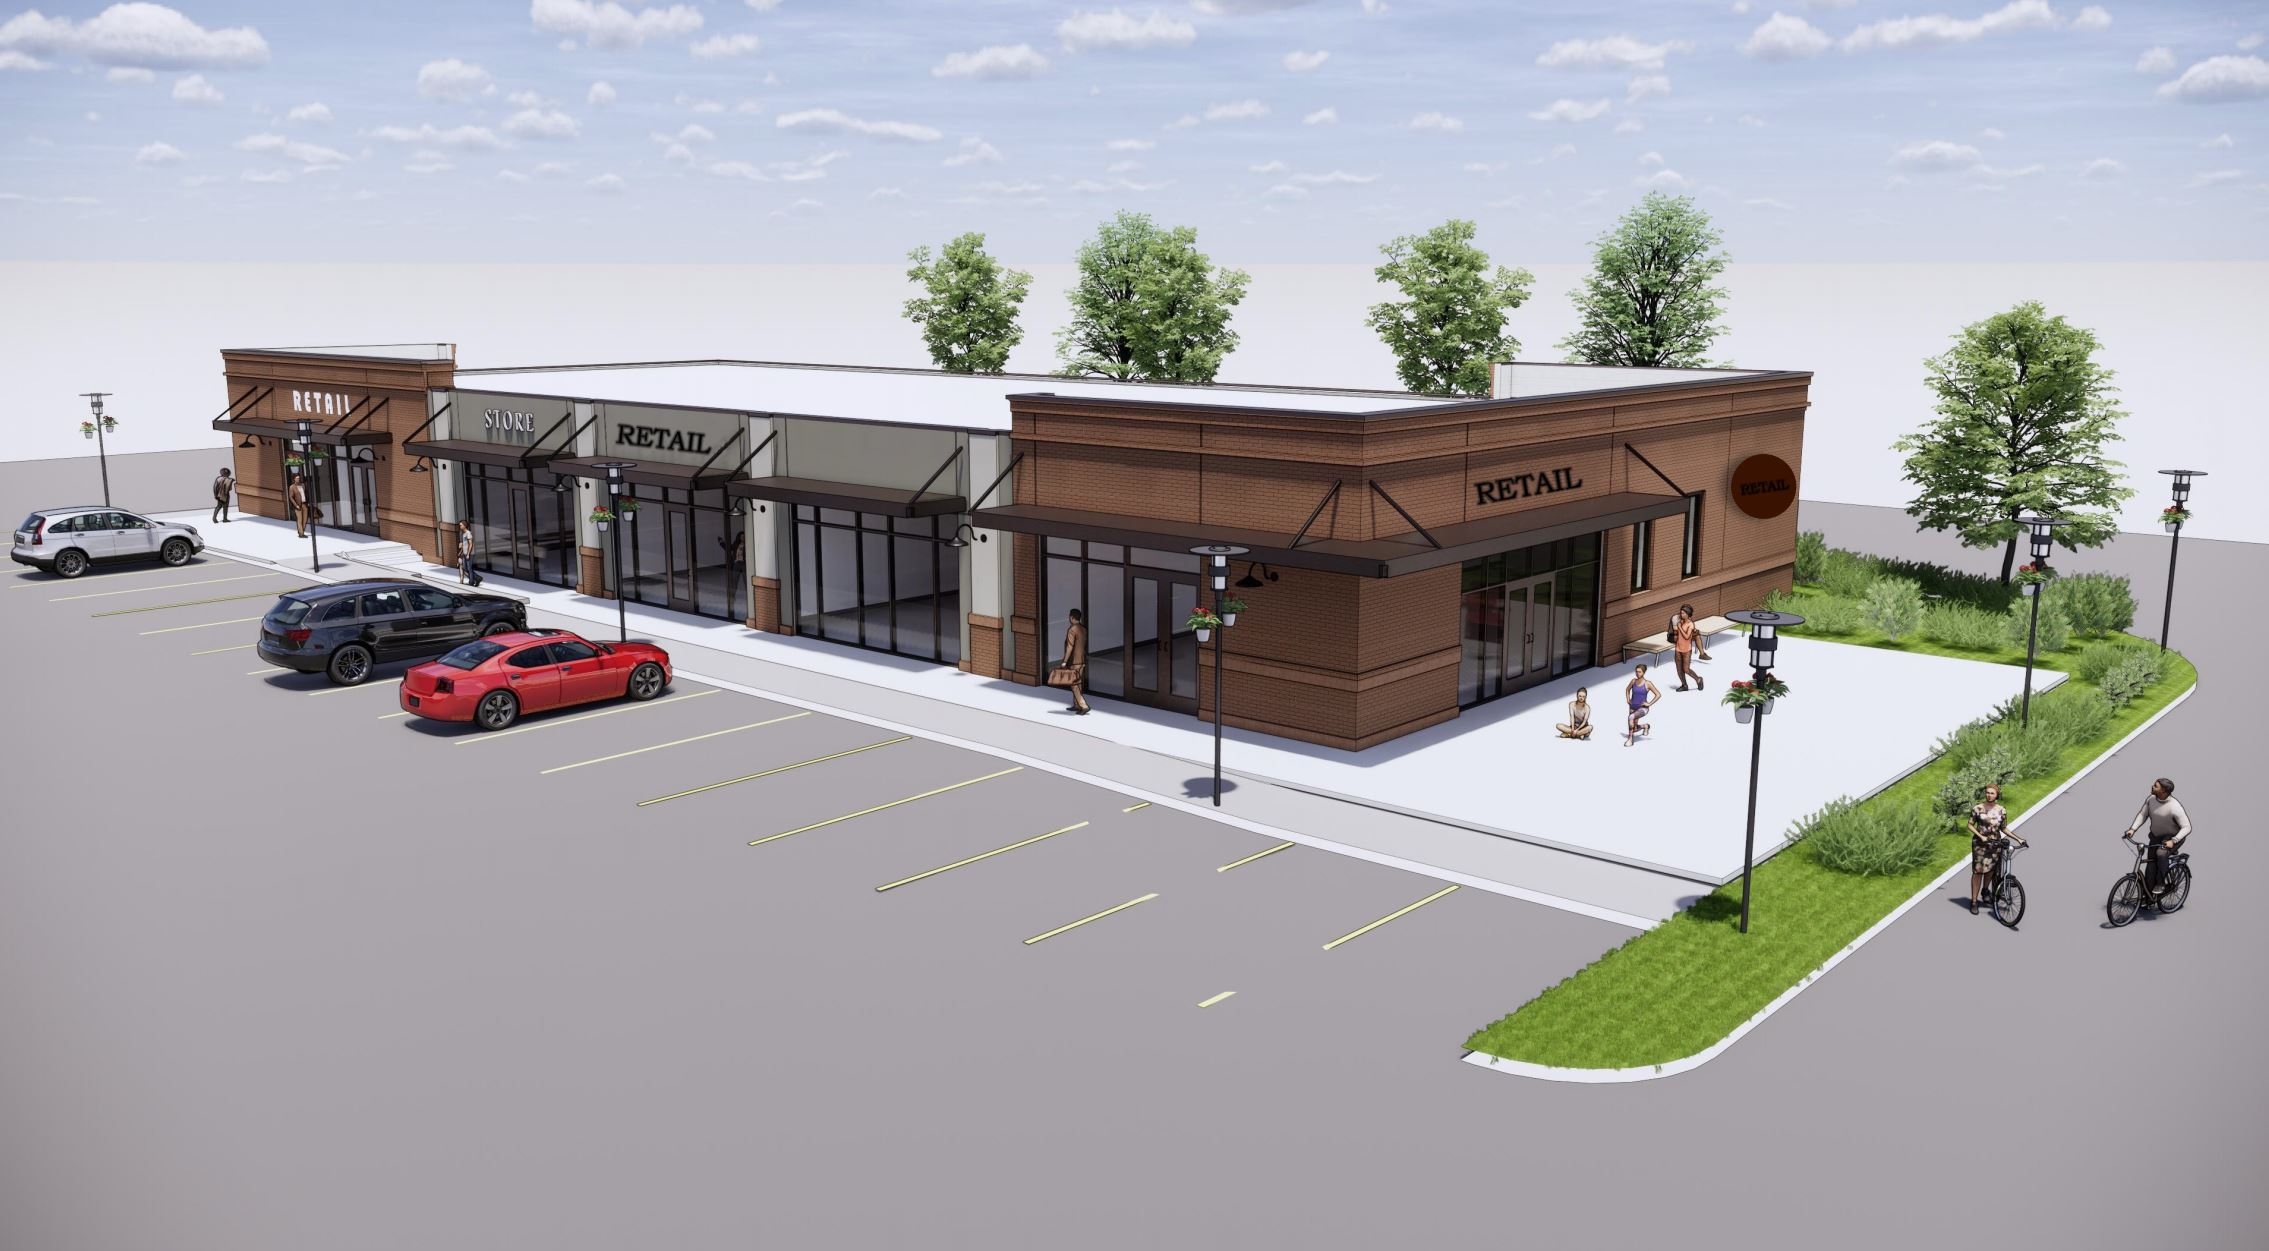 Barber Companies to turn former Trussville bowling alley into retail development